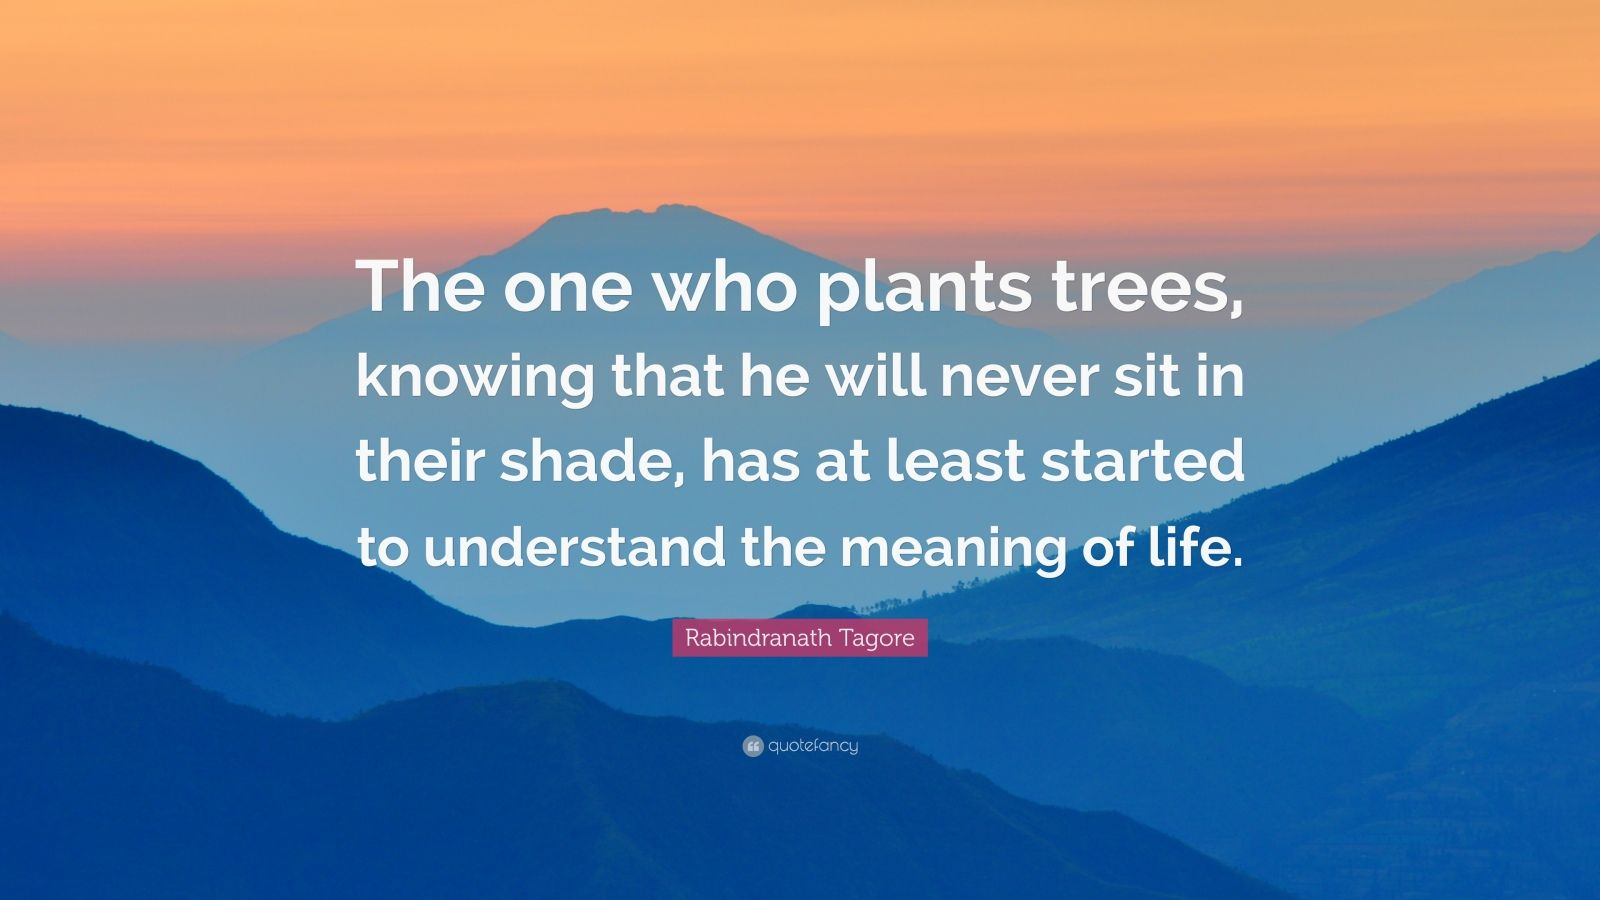 """Rabindranath Tagore Quote: """"The one who plants trees, knowing that he will never sit in their shade, has at least started to understand the meaning of life."""""""